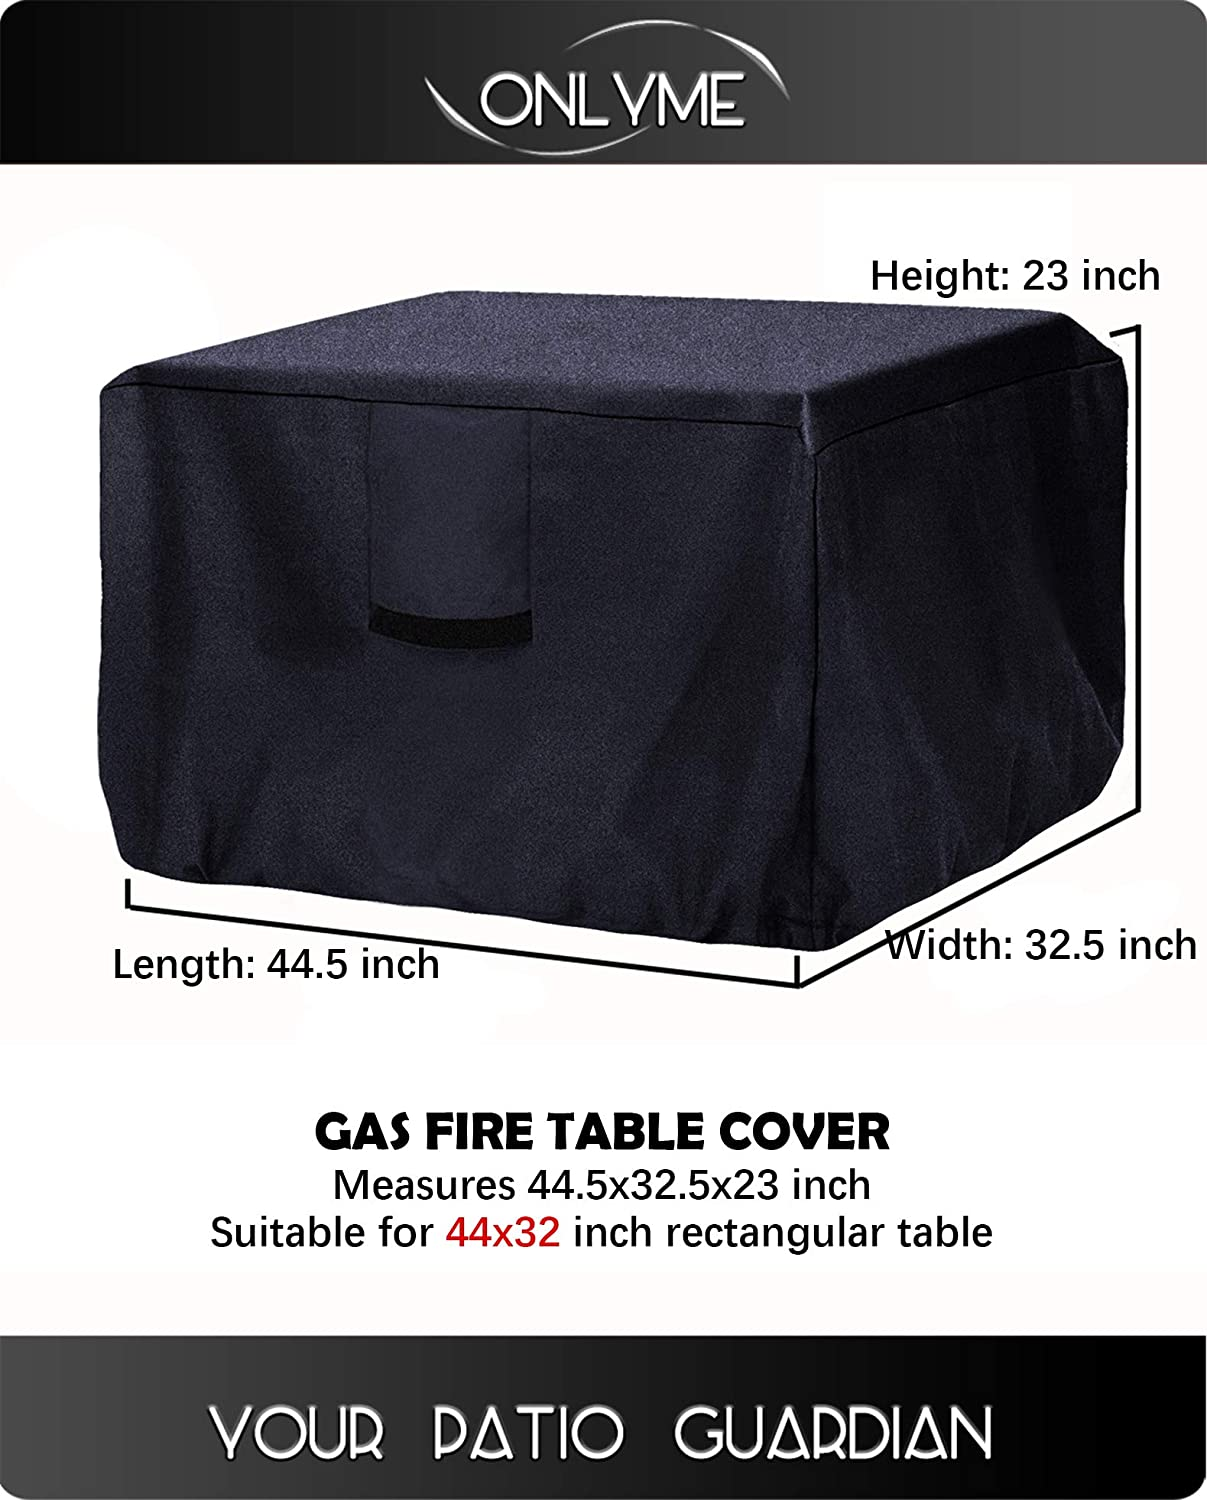 x48 Onlyme Patio Clay Chiminea Cover Waterproof Chimenea Cover 18 Outdoor Fire Pit Cover Dia H